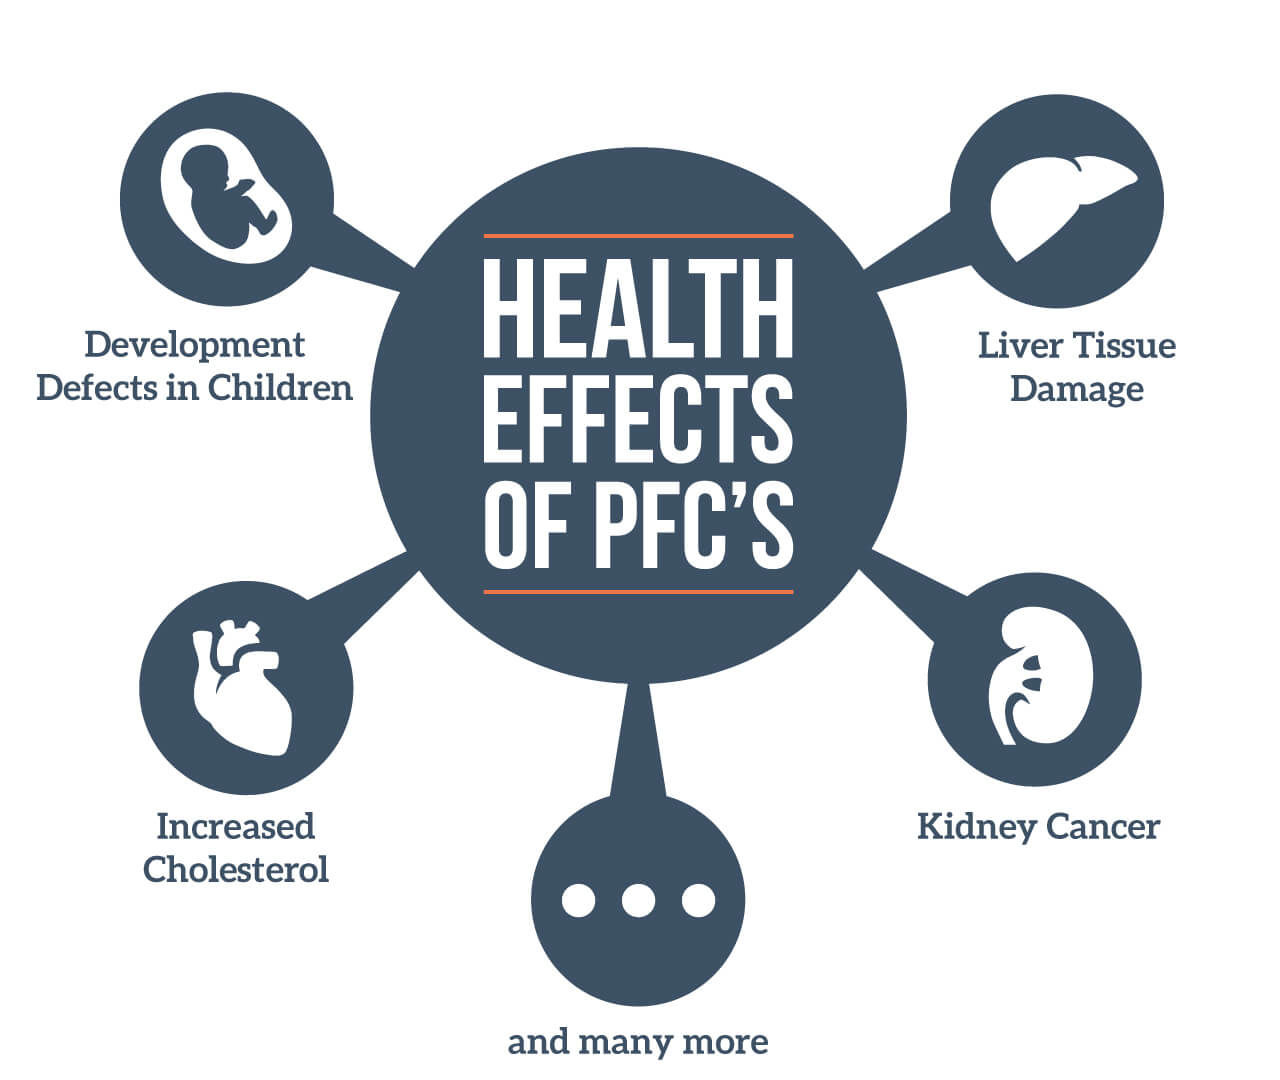 Image of the potential health effects of pfcs